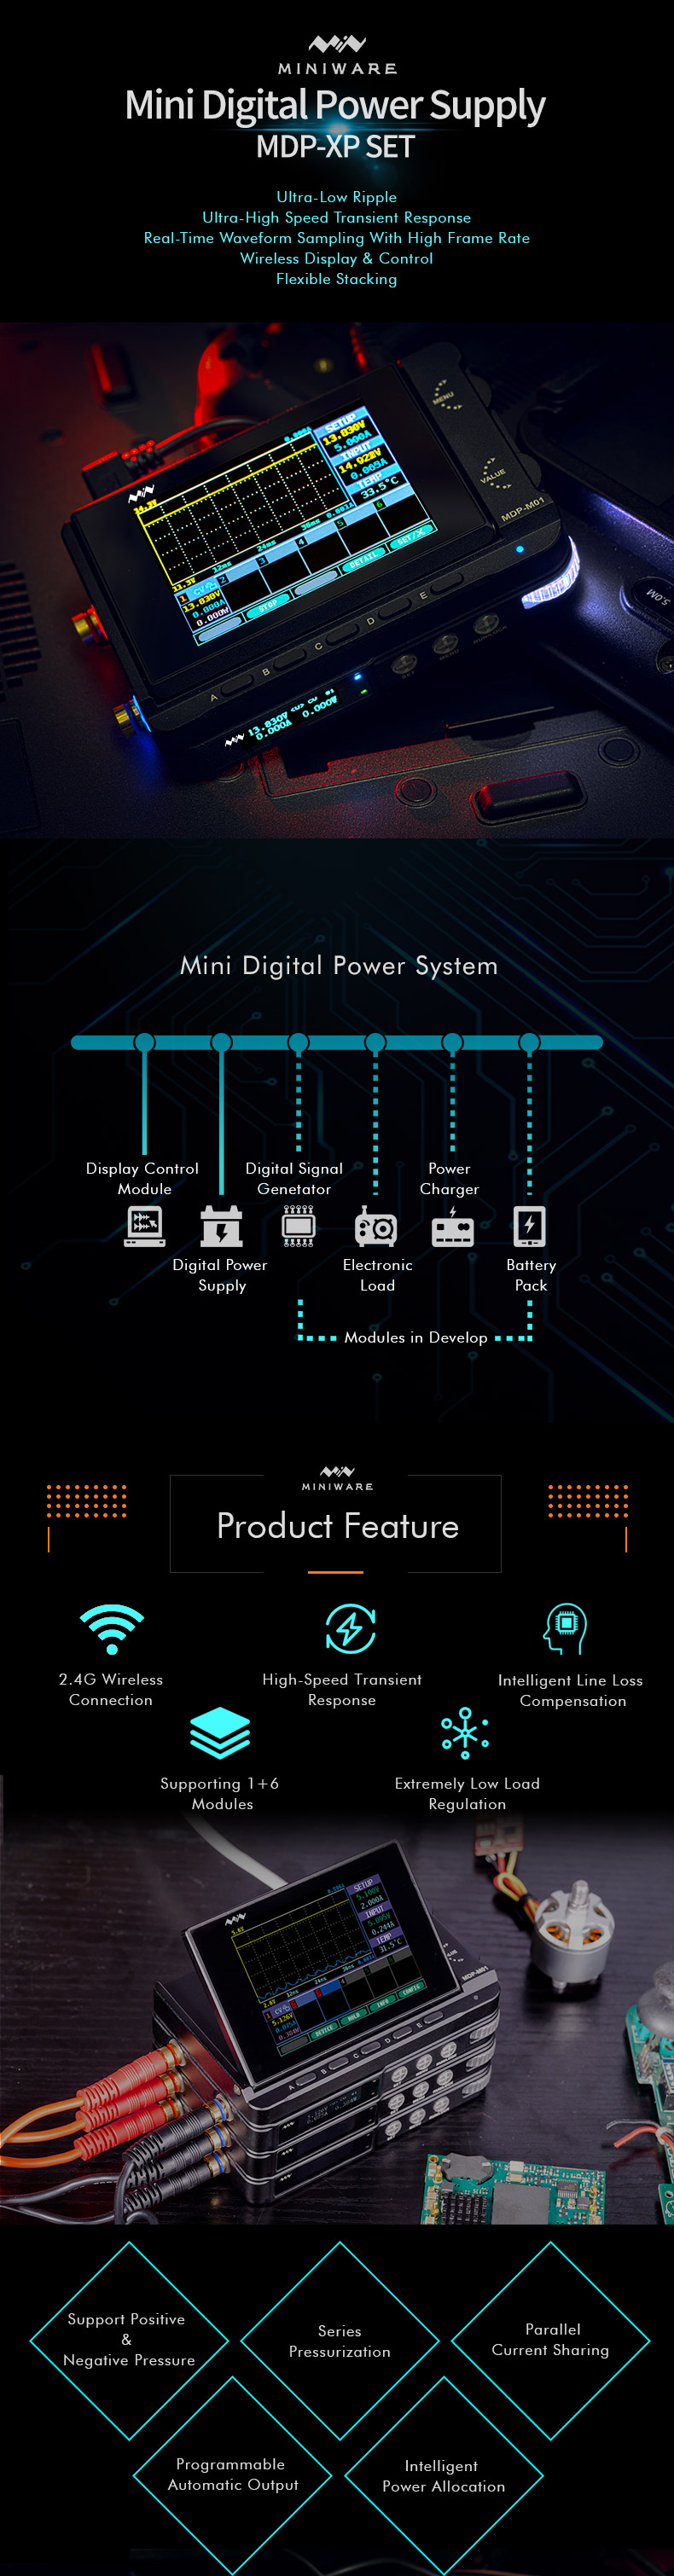 MINI MDP-XP Mini 30V/5A 90W 2.4G Wireless Connection Digital Programmable Power System with 2.8-inch TFT Screen Monitor Automatic Matching Control 6 Sub-modules